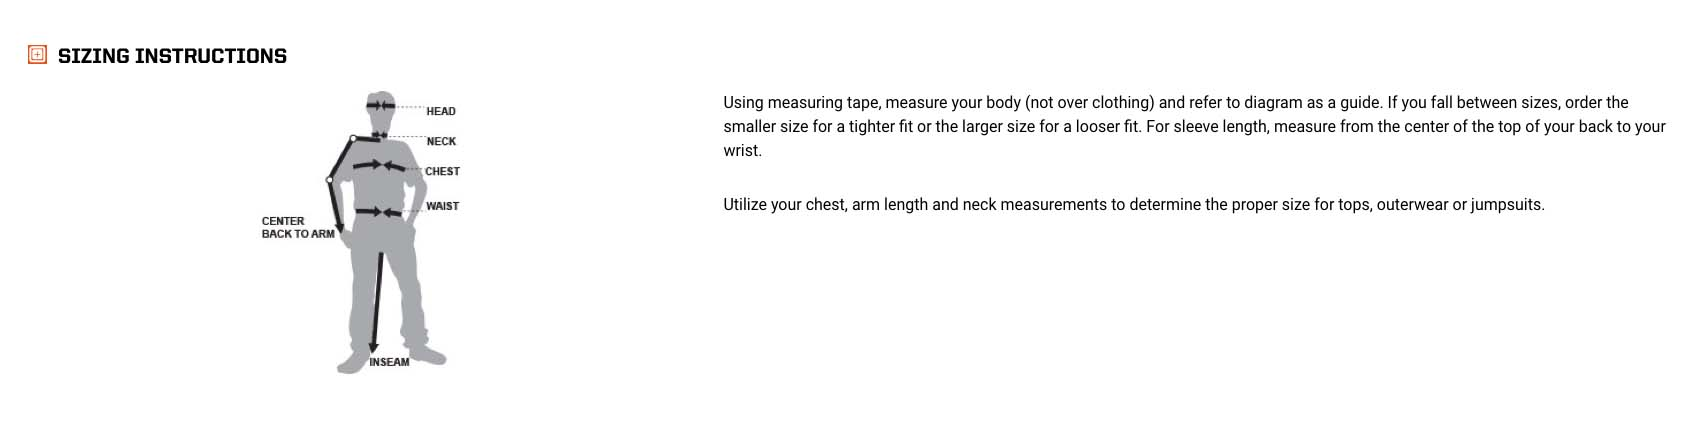 5.11-mens-sizing-instructions.jpg